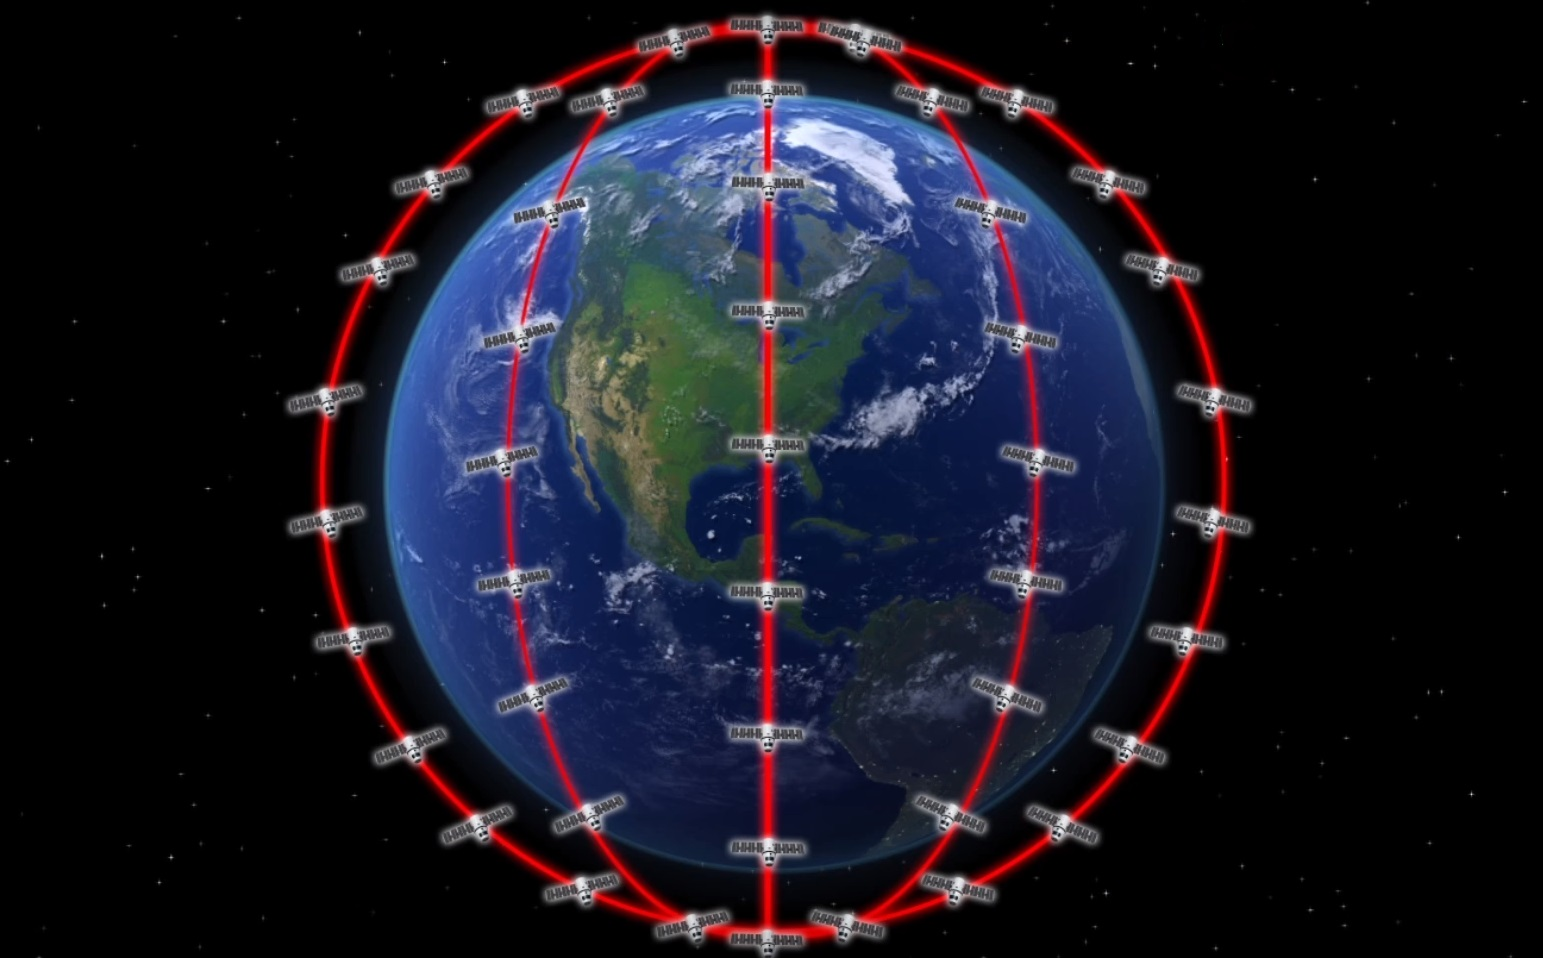 tesla-might-use-spacex-s-satellite-constellation-for-car-internet-connectivity-123502_1